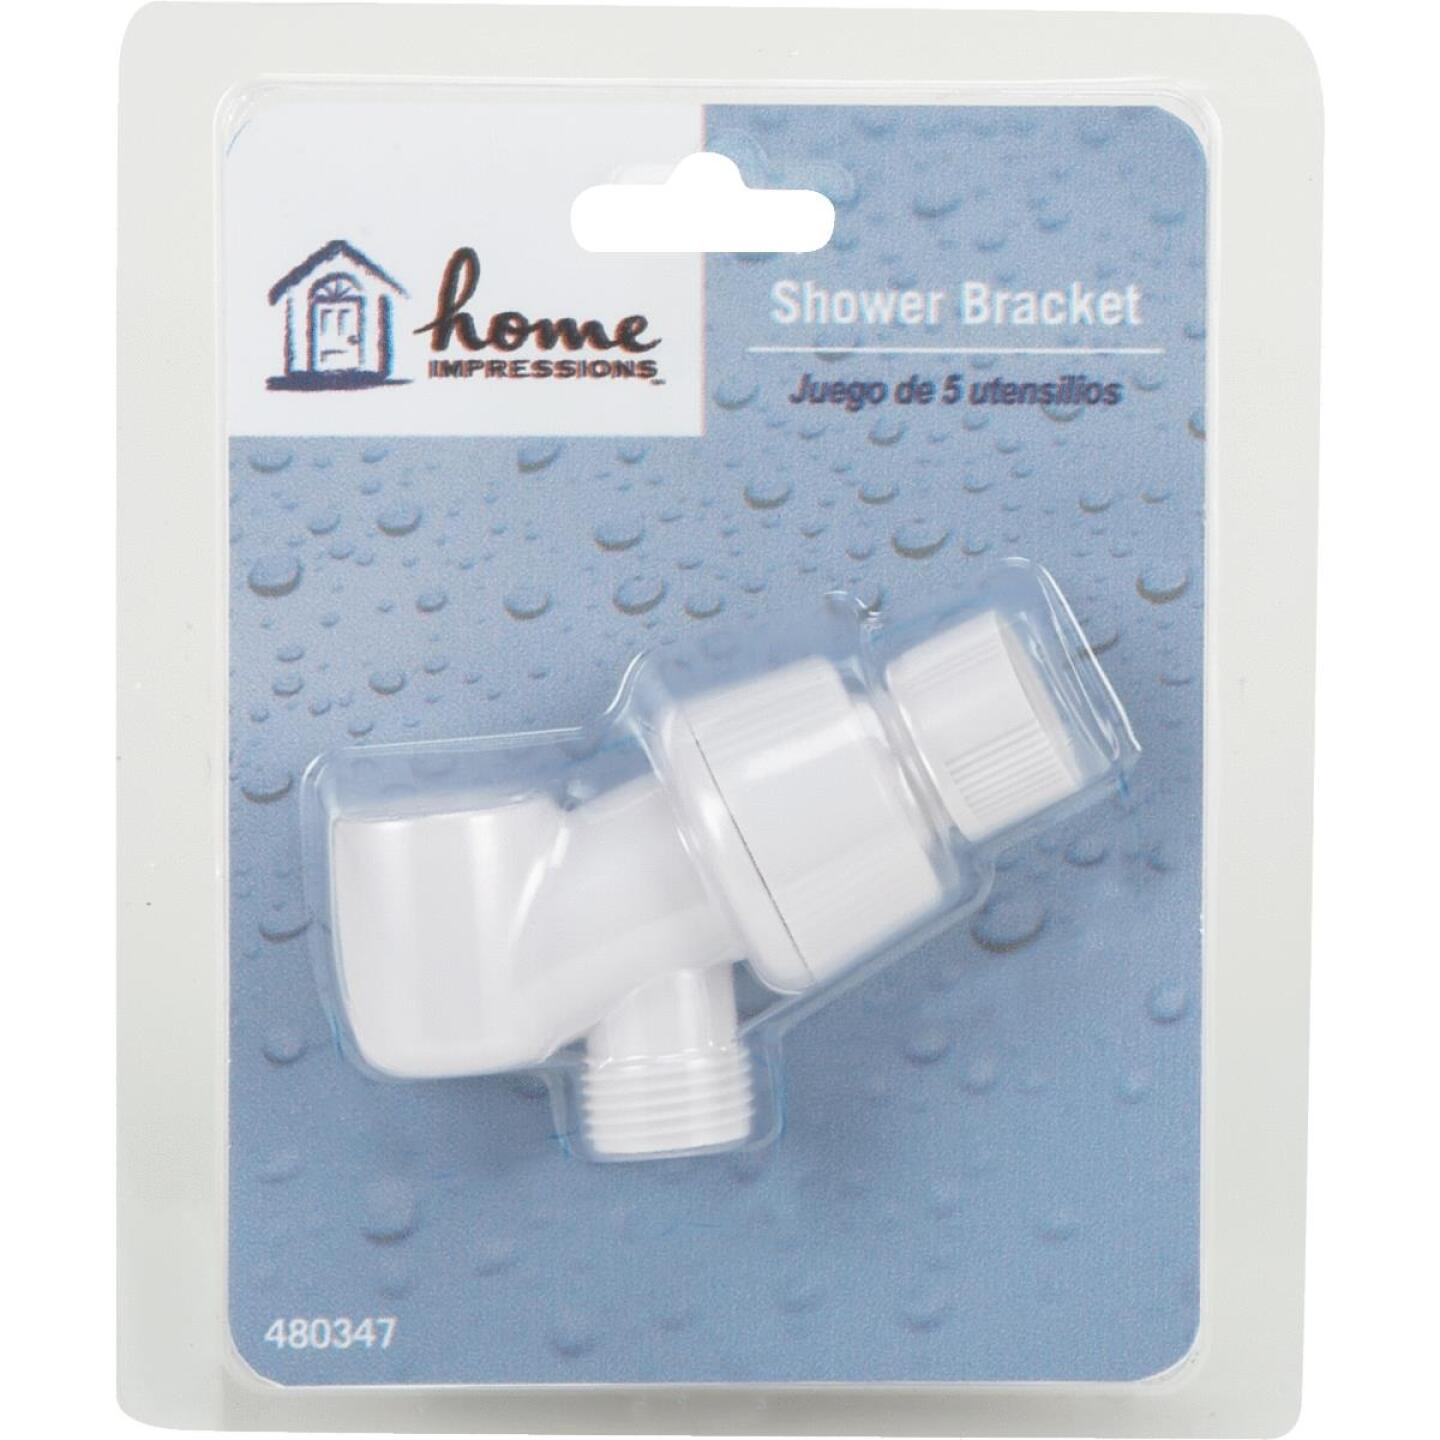 Home Impressions White Plastic Shower Bracket Image 2